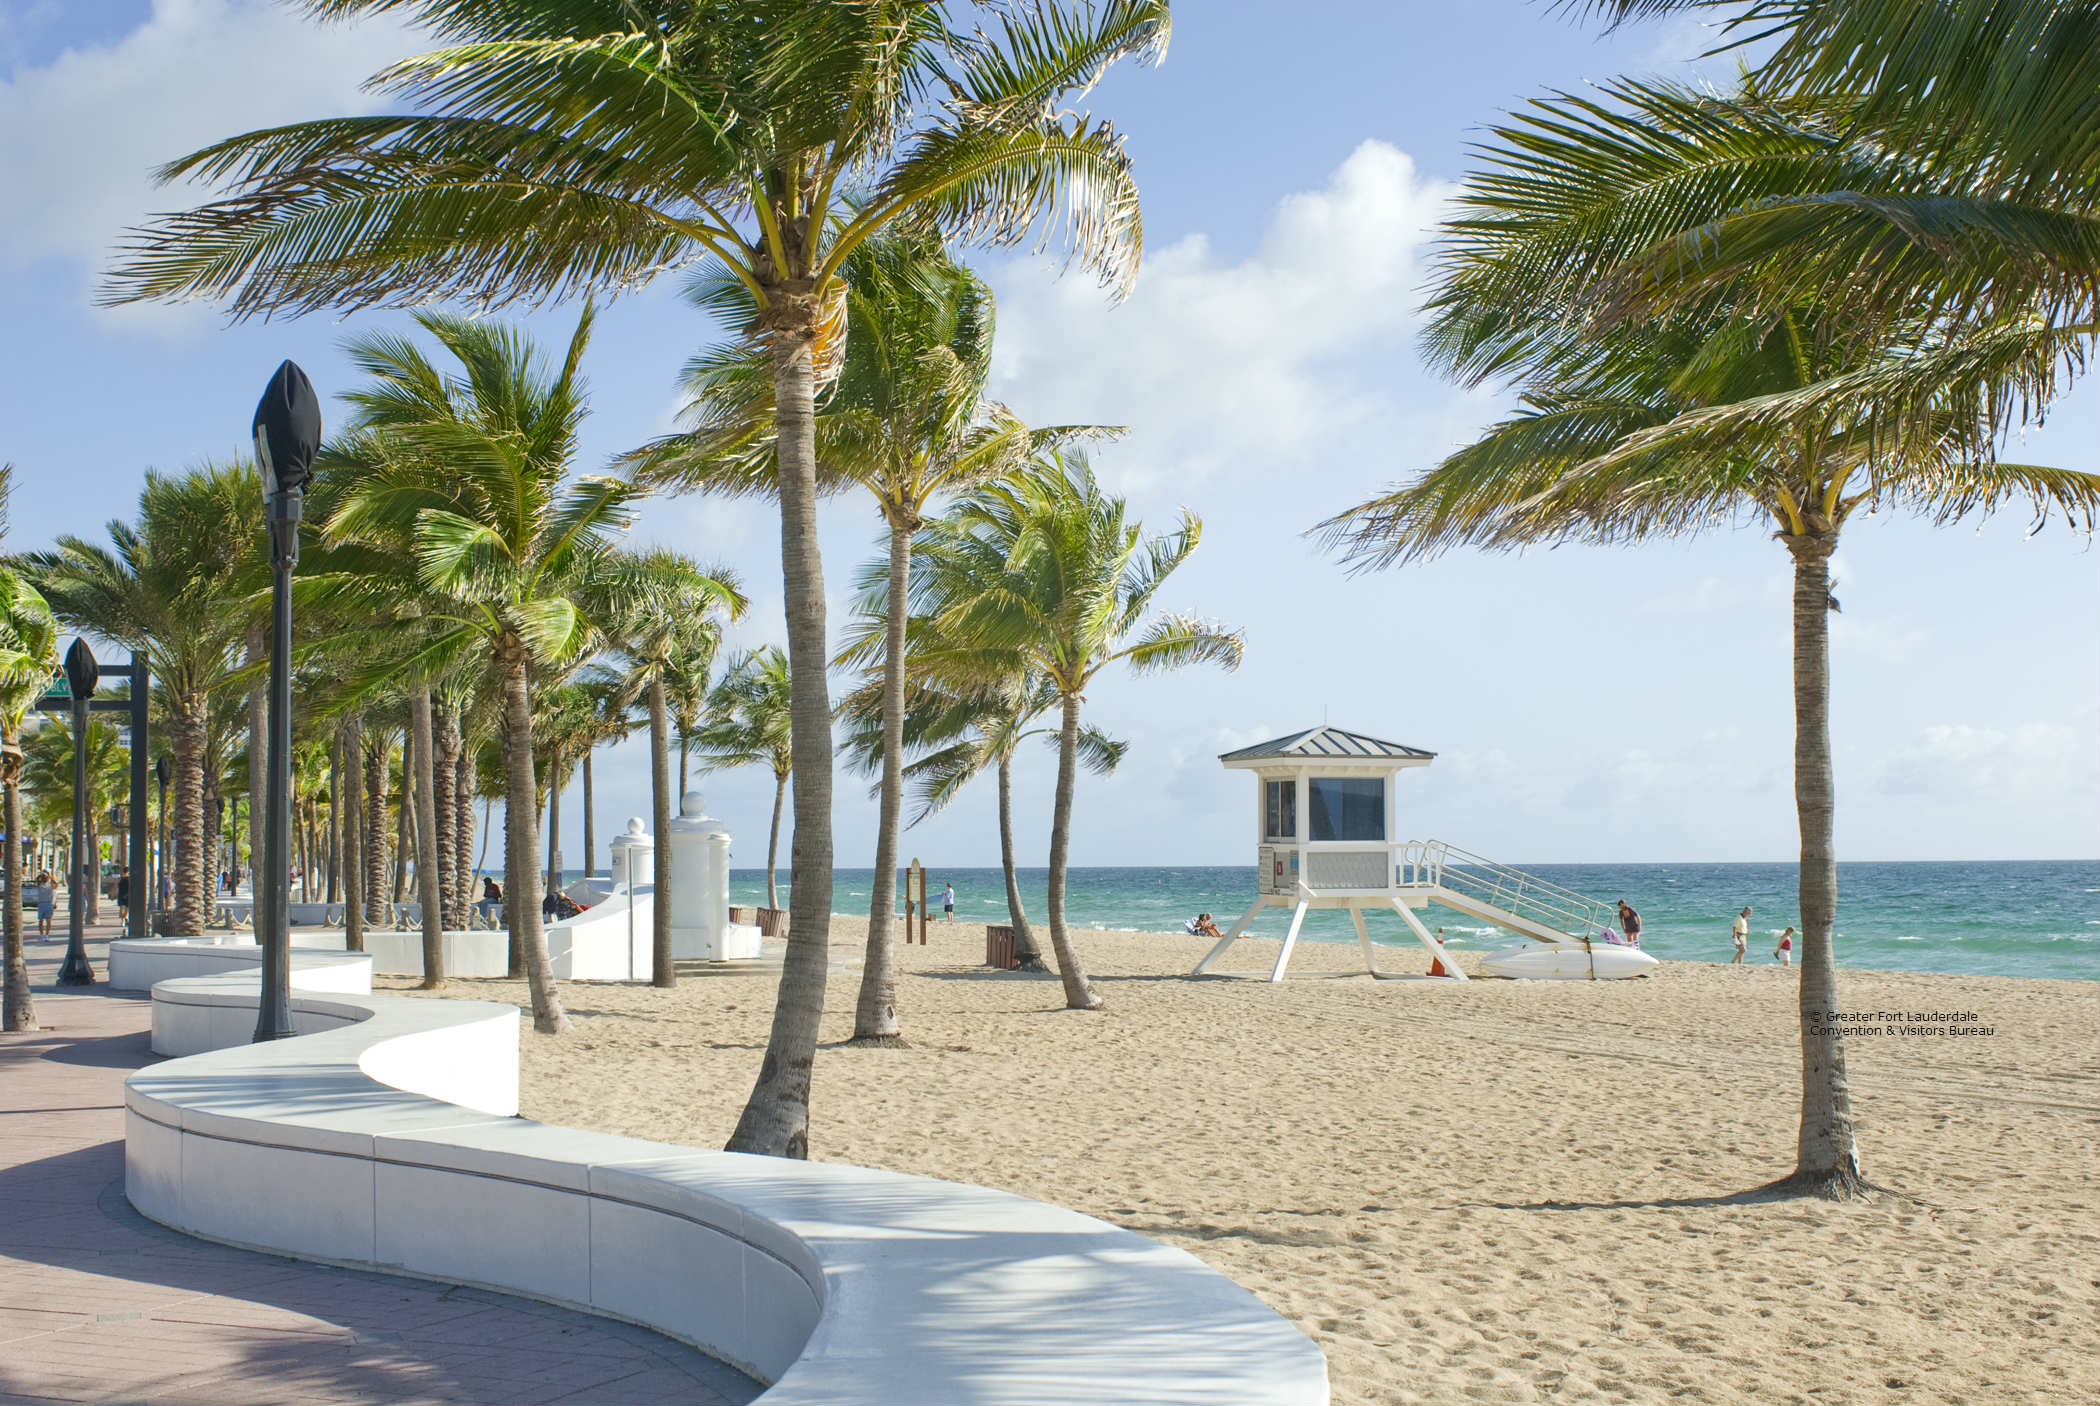 © Greater Fort Lauderdale Convention & Visitors Bureau